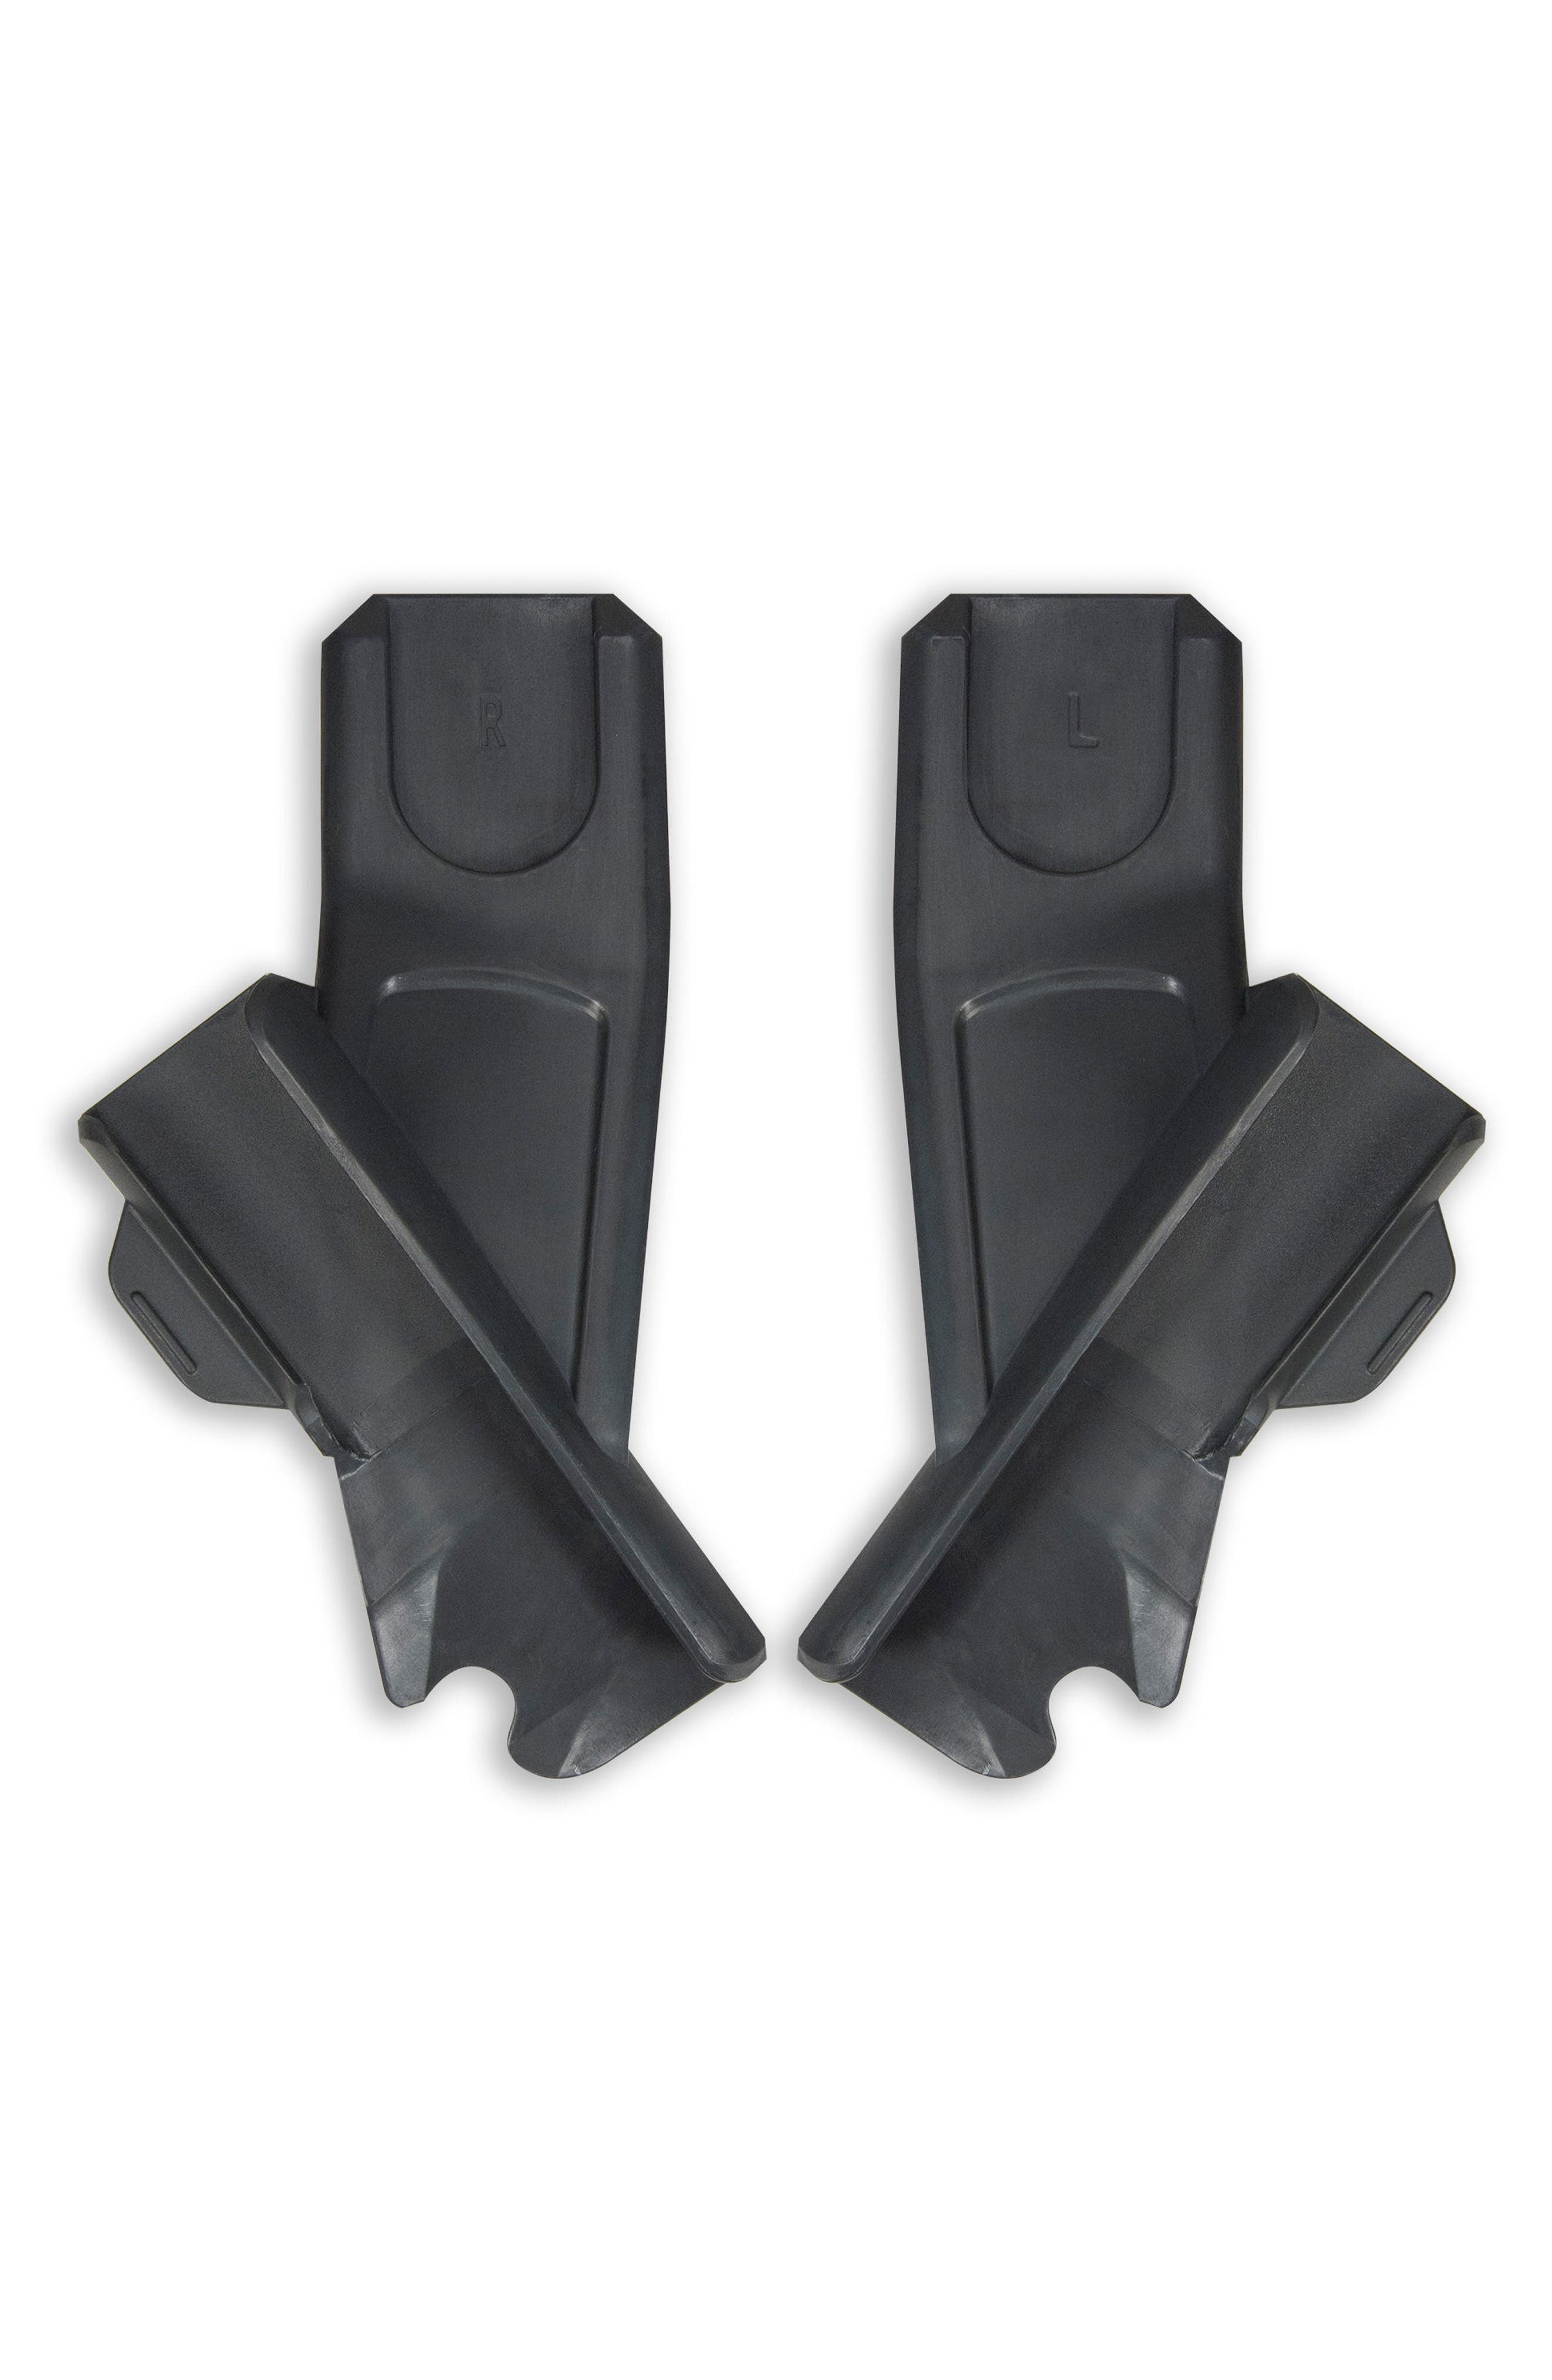 Lower Adapters for Vista Stroller,                             Main thumbnail 1, color,                             001